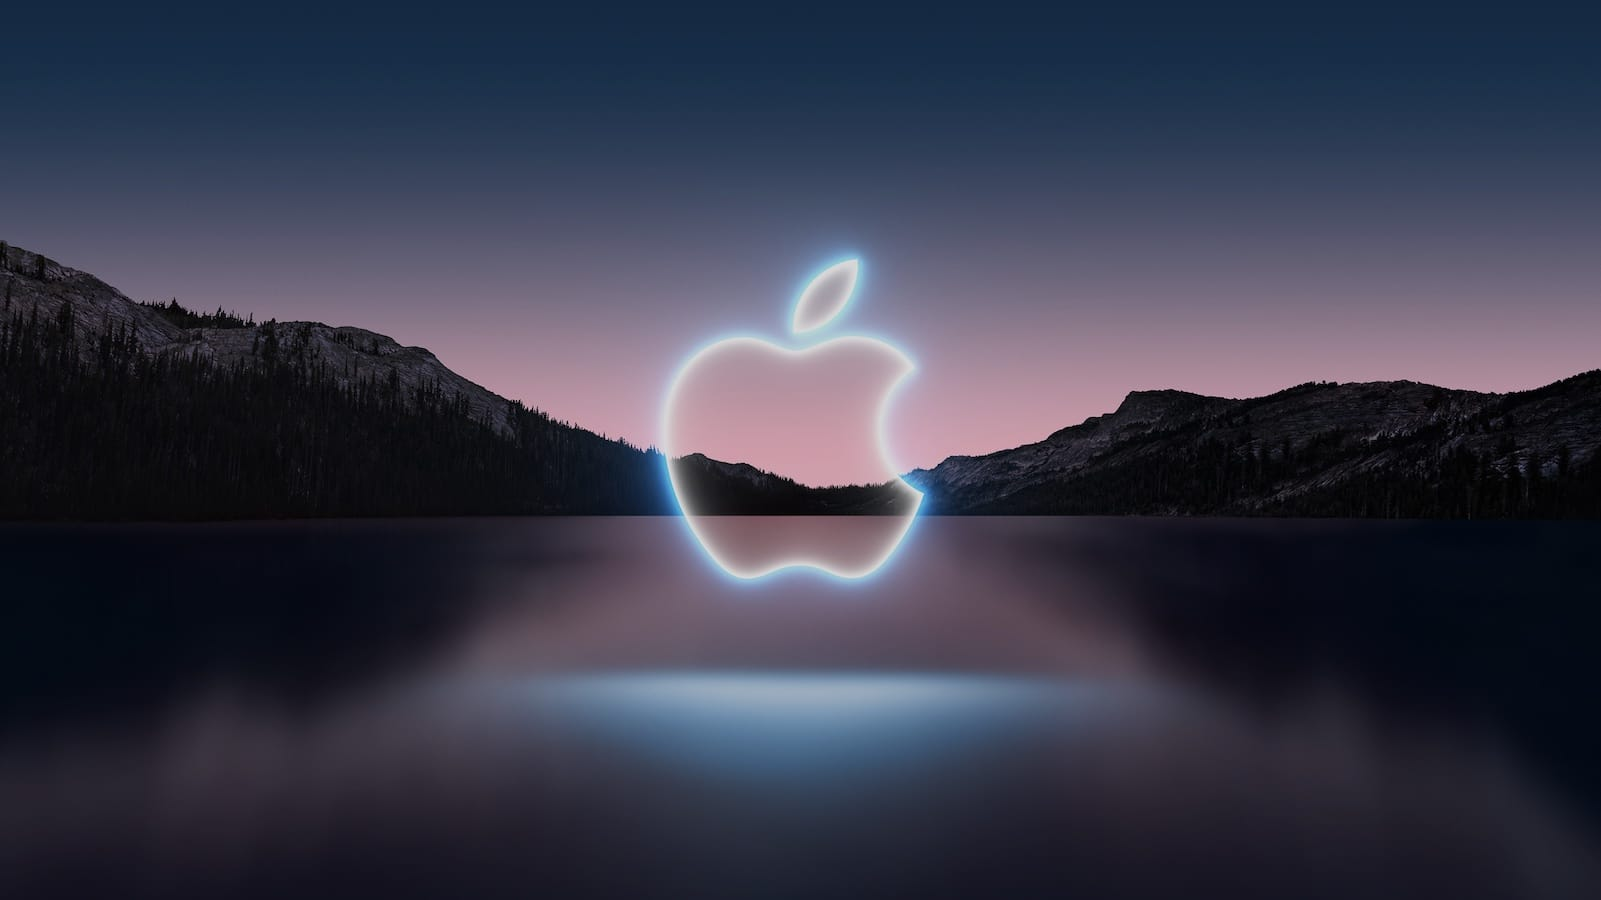 Apple event highlights—iPhone 13, Apple Watch Series 7, all new iPad mini, and more